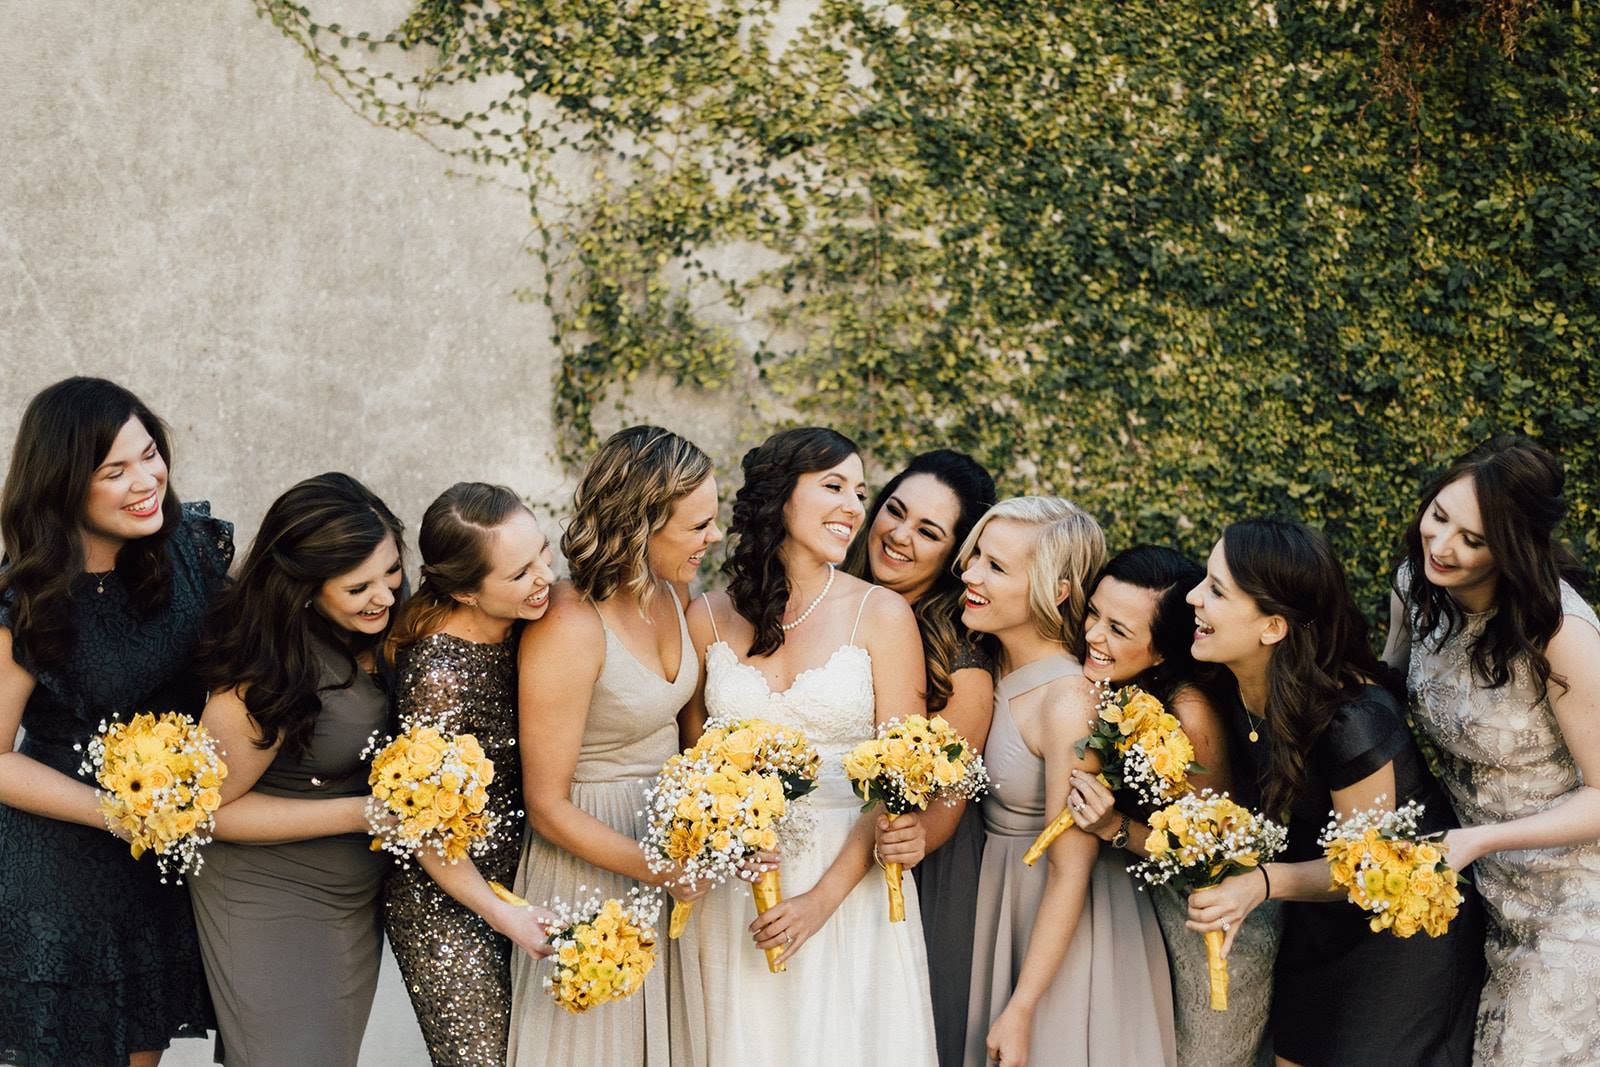 As You Wish - bride and bridesmaids in neutral colors with yellow bouquets